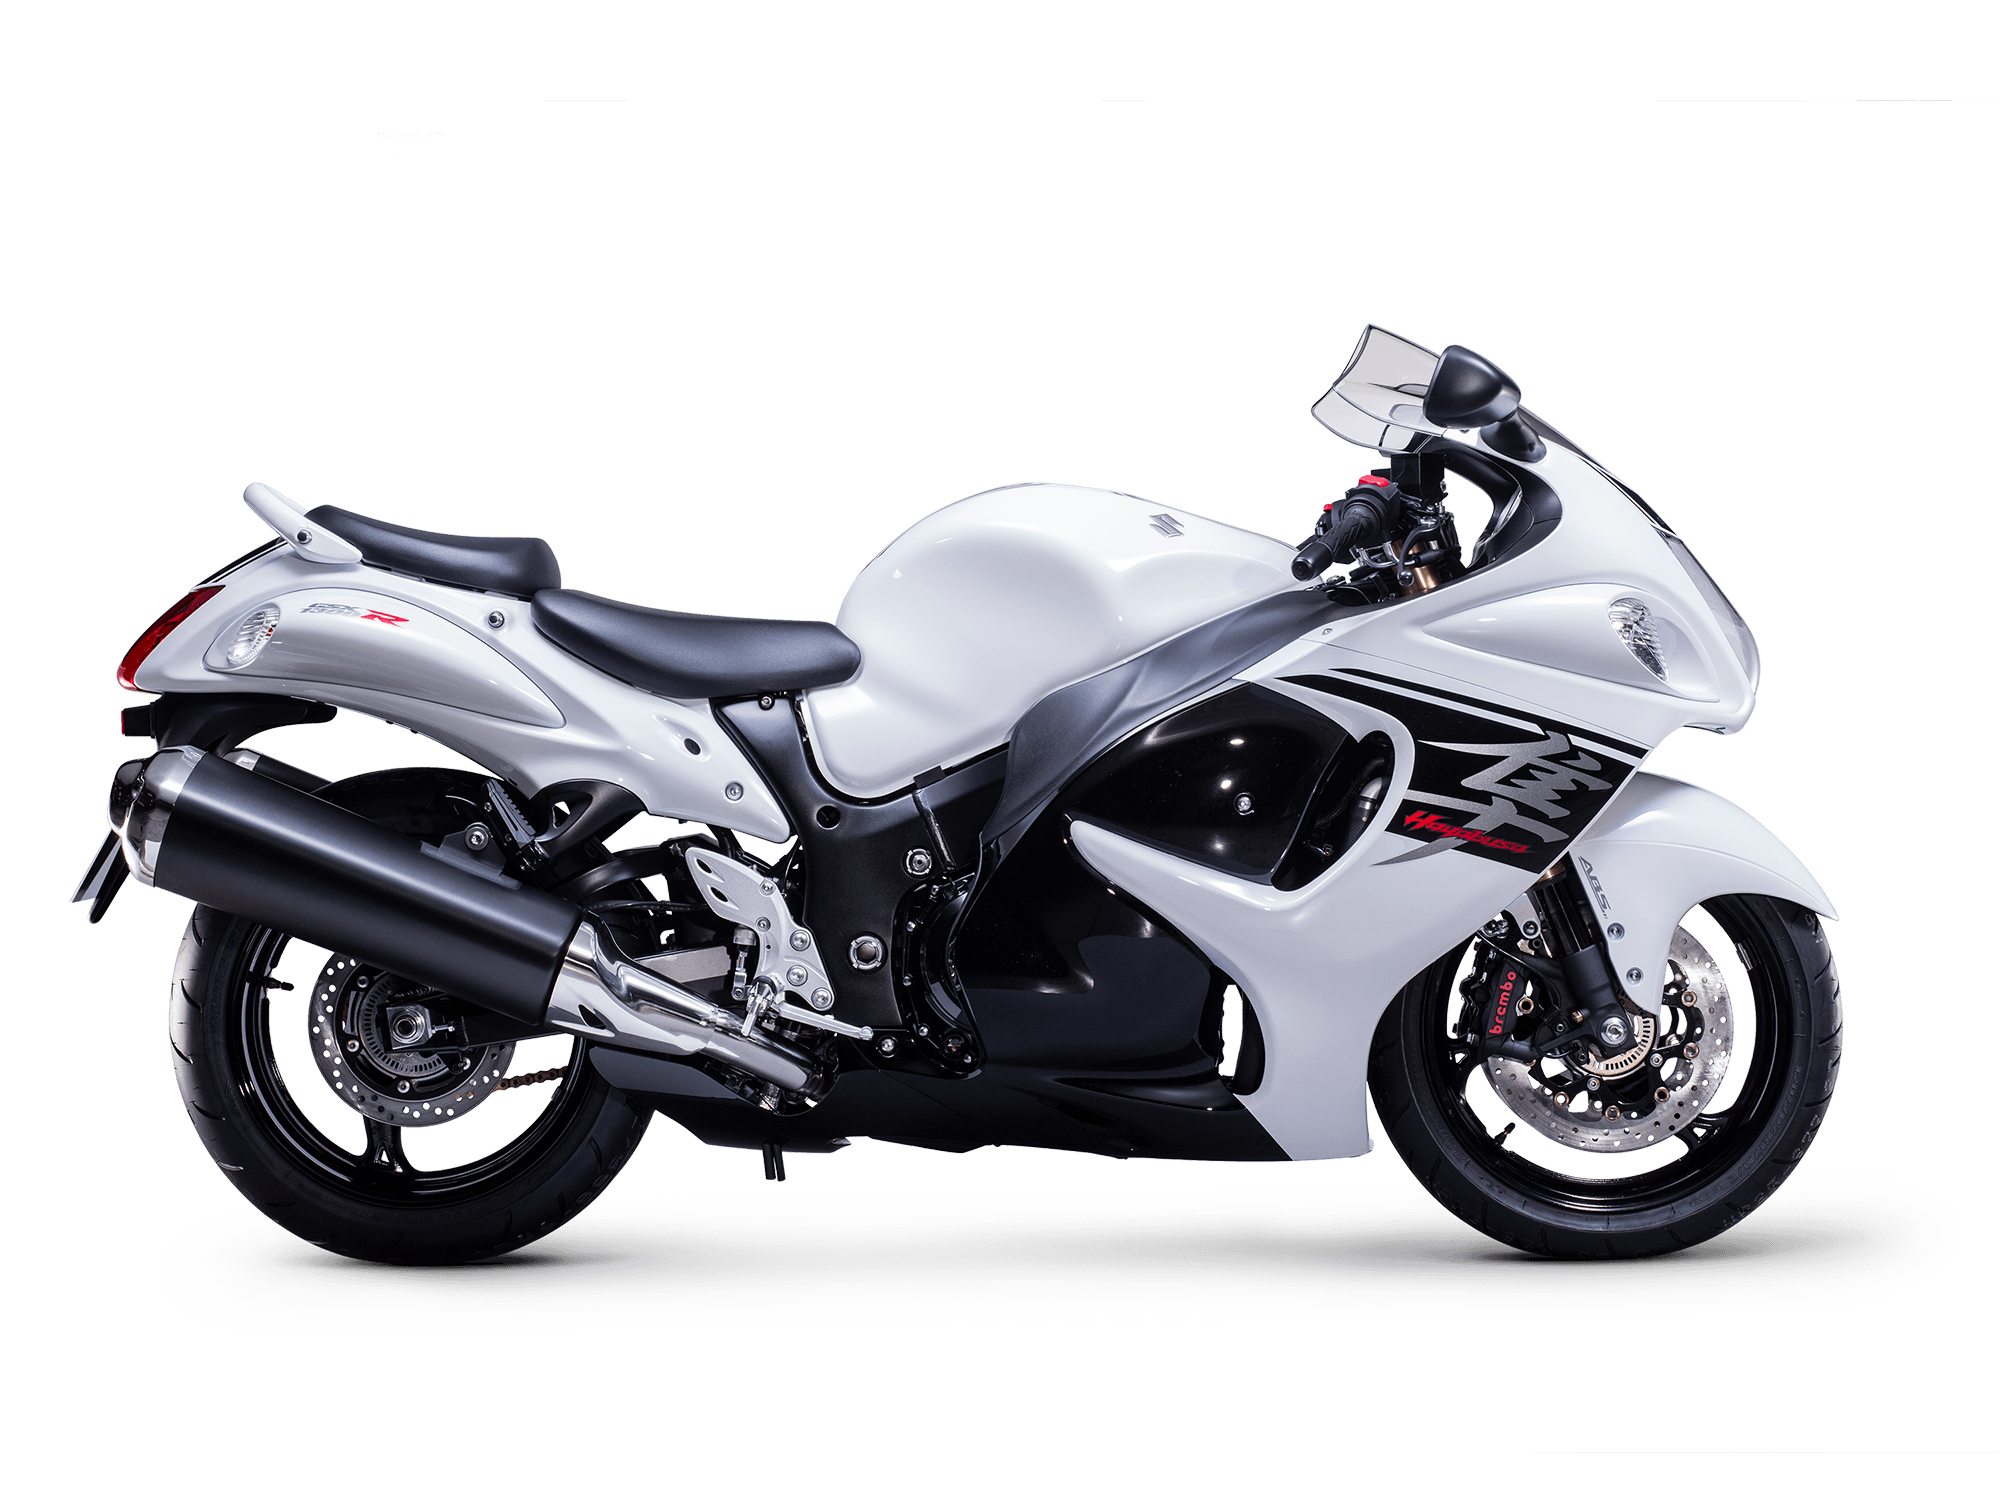 Suzuki S Revered Hayabusa Continues Into 2017 With A New White And Black Colour Option As Well